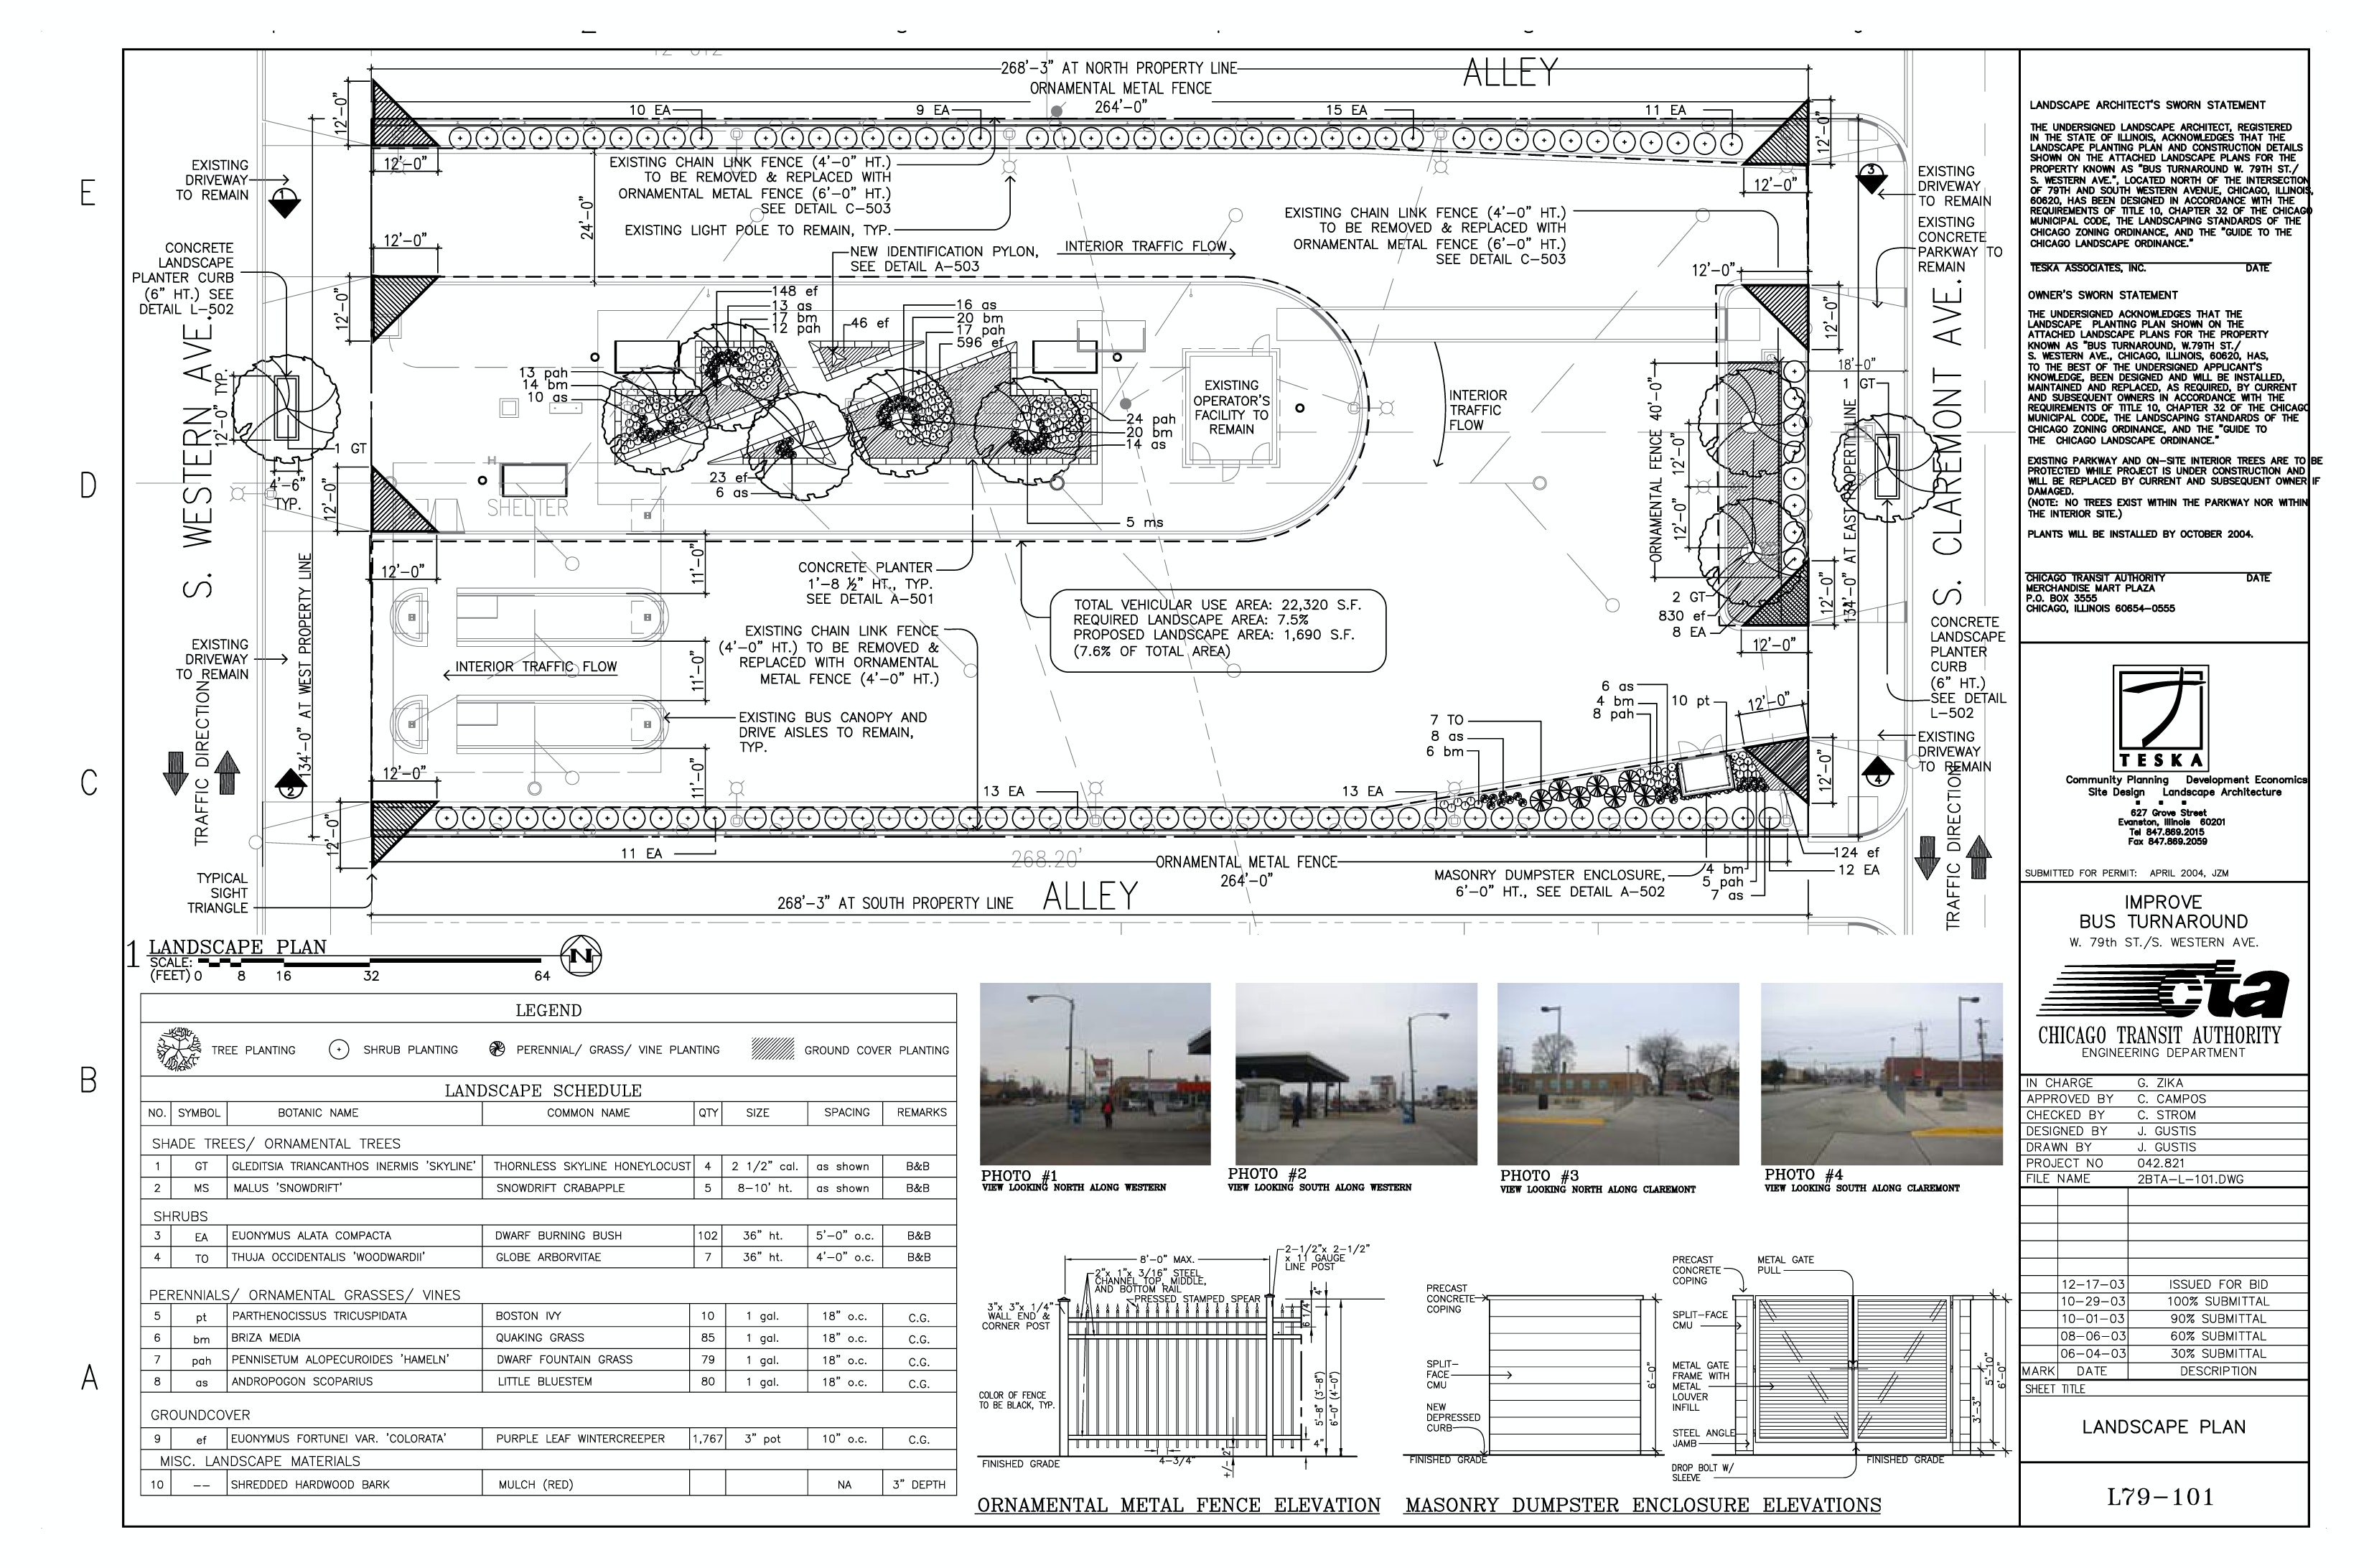 Code 3 Led X 2100 Wiring Diagram Worksheet And Light Bar Connection Wire Diagrams Rh Maerkang Org Ledx